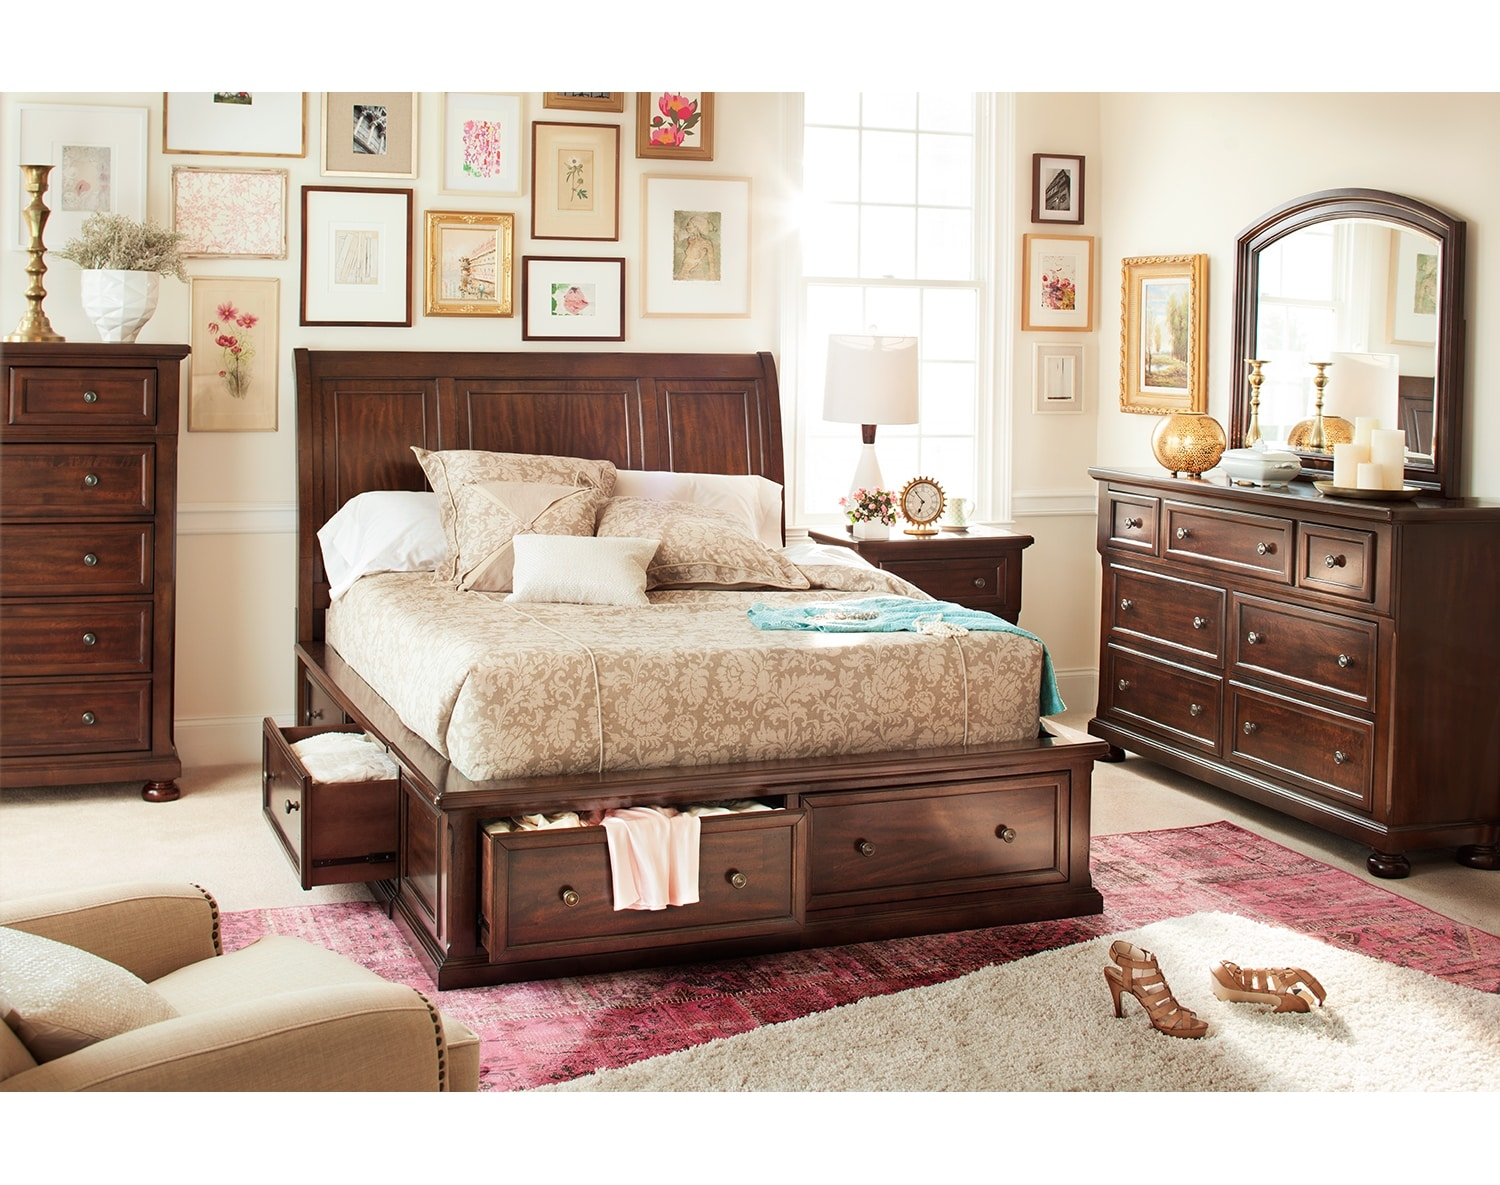 Shop Our Bedroom Collections | Value City Furniture and Mattresses